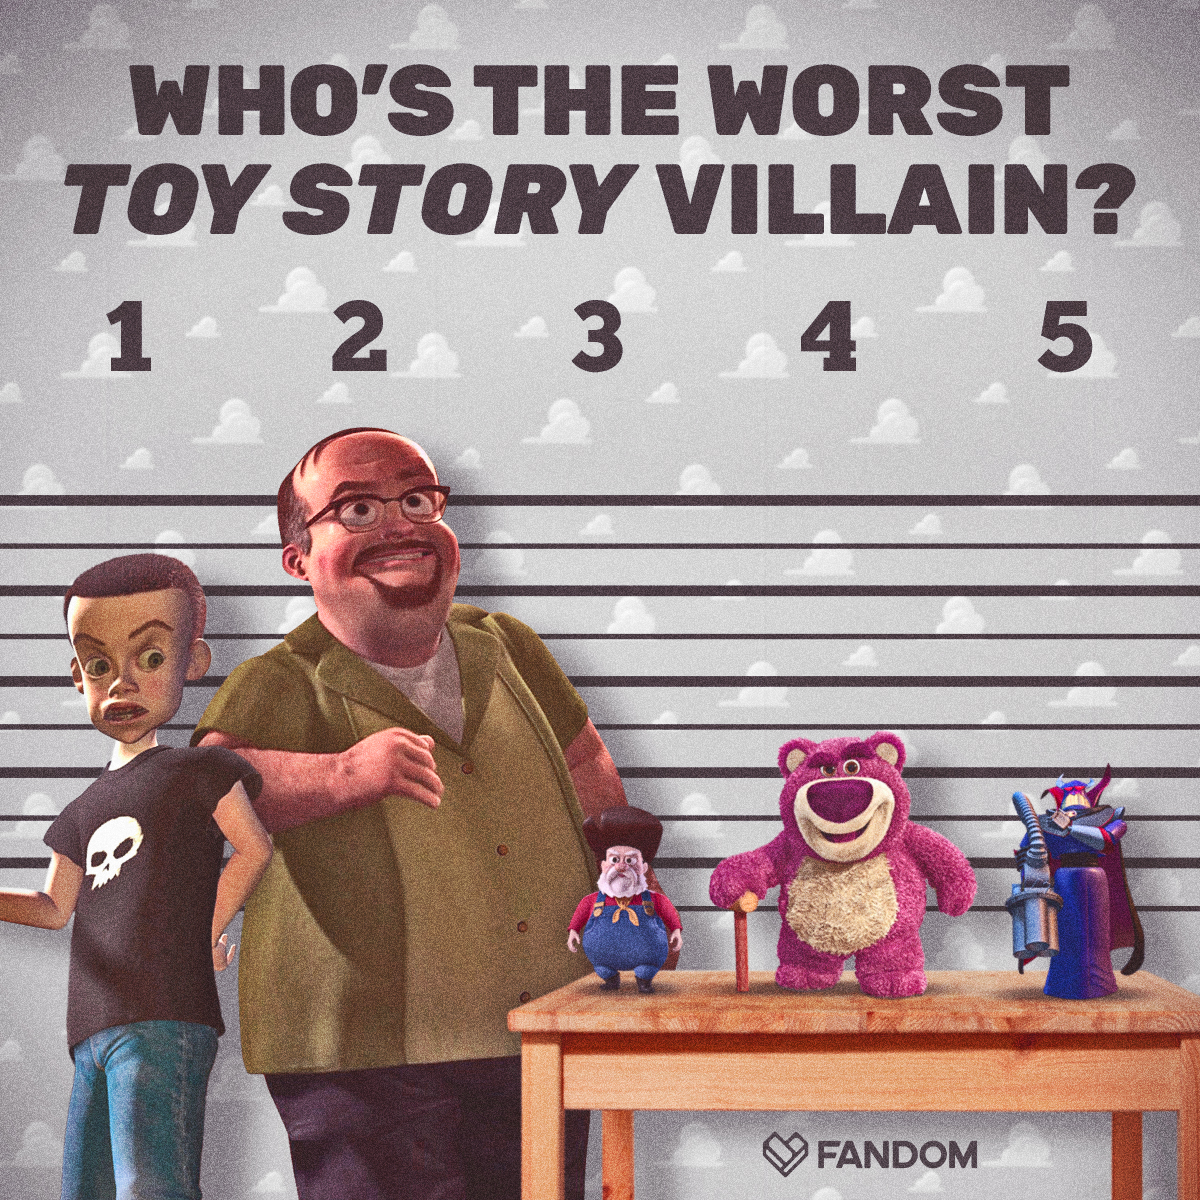 What's your vote for the worst Toy Story villain?